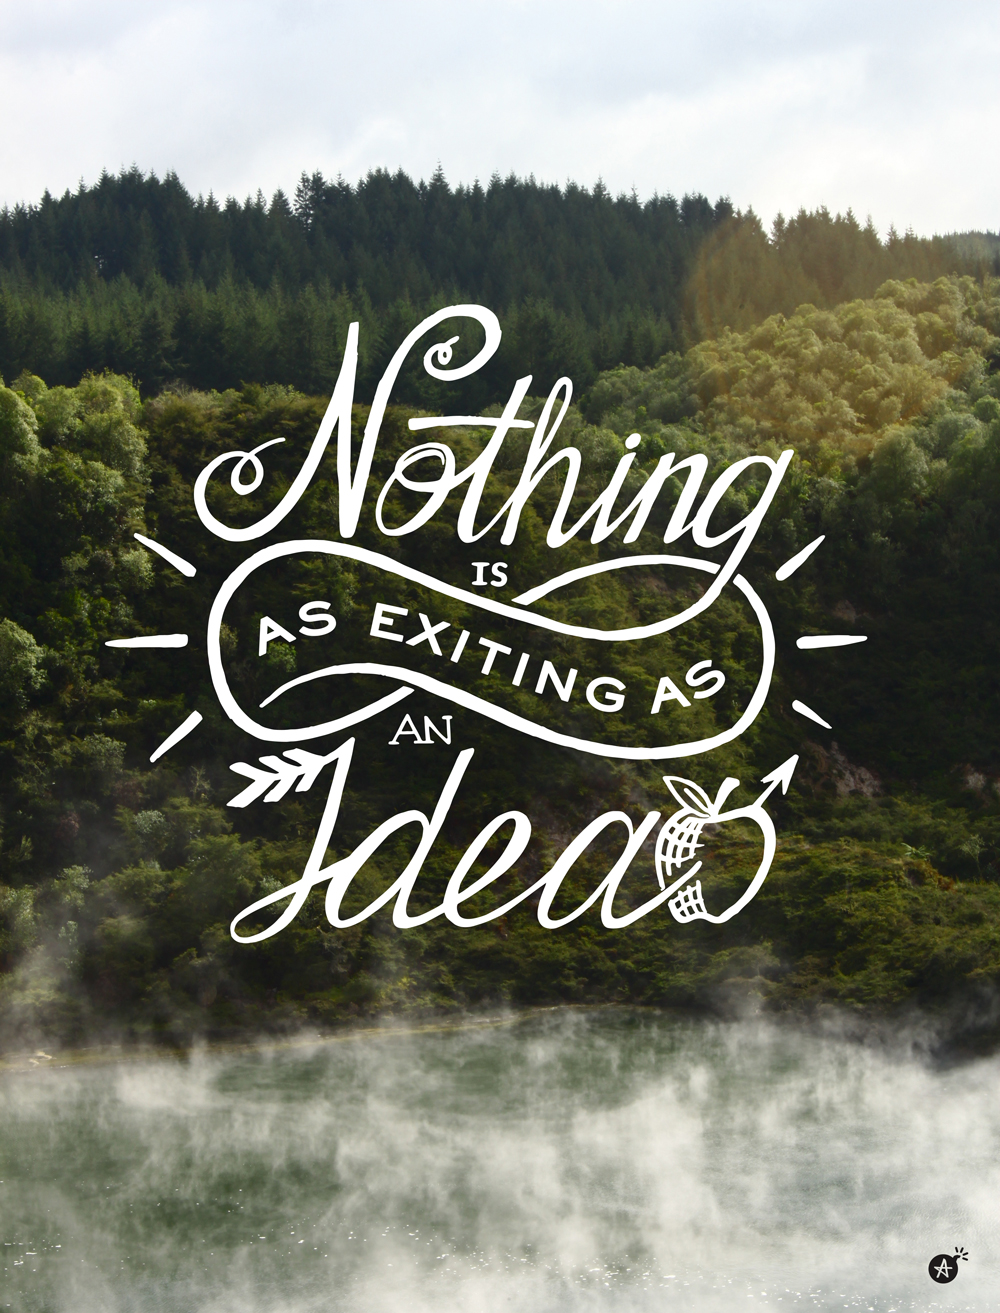 Nothing is as exciting as an Idea